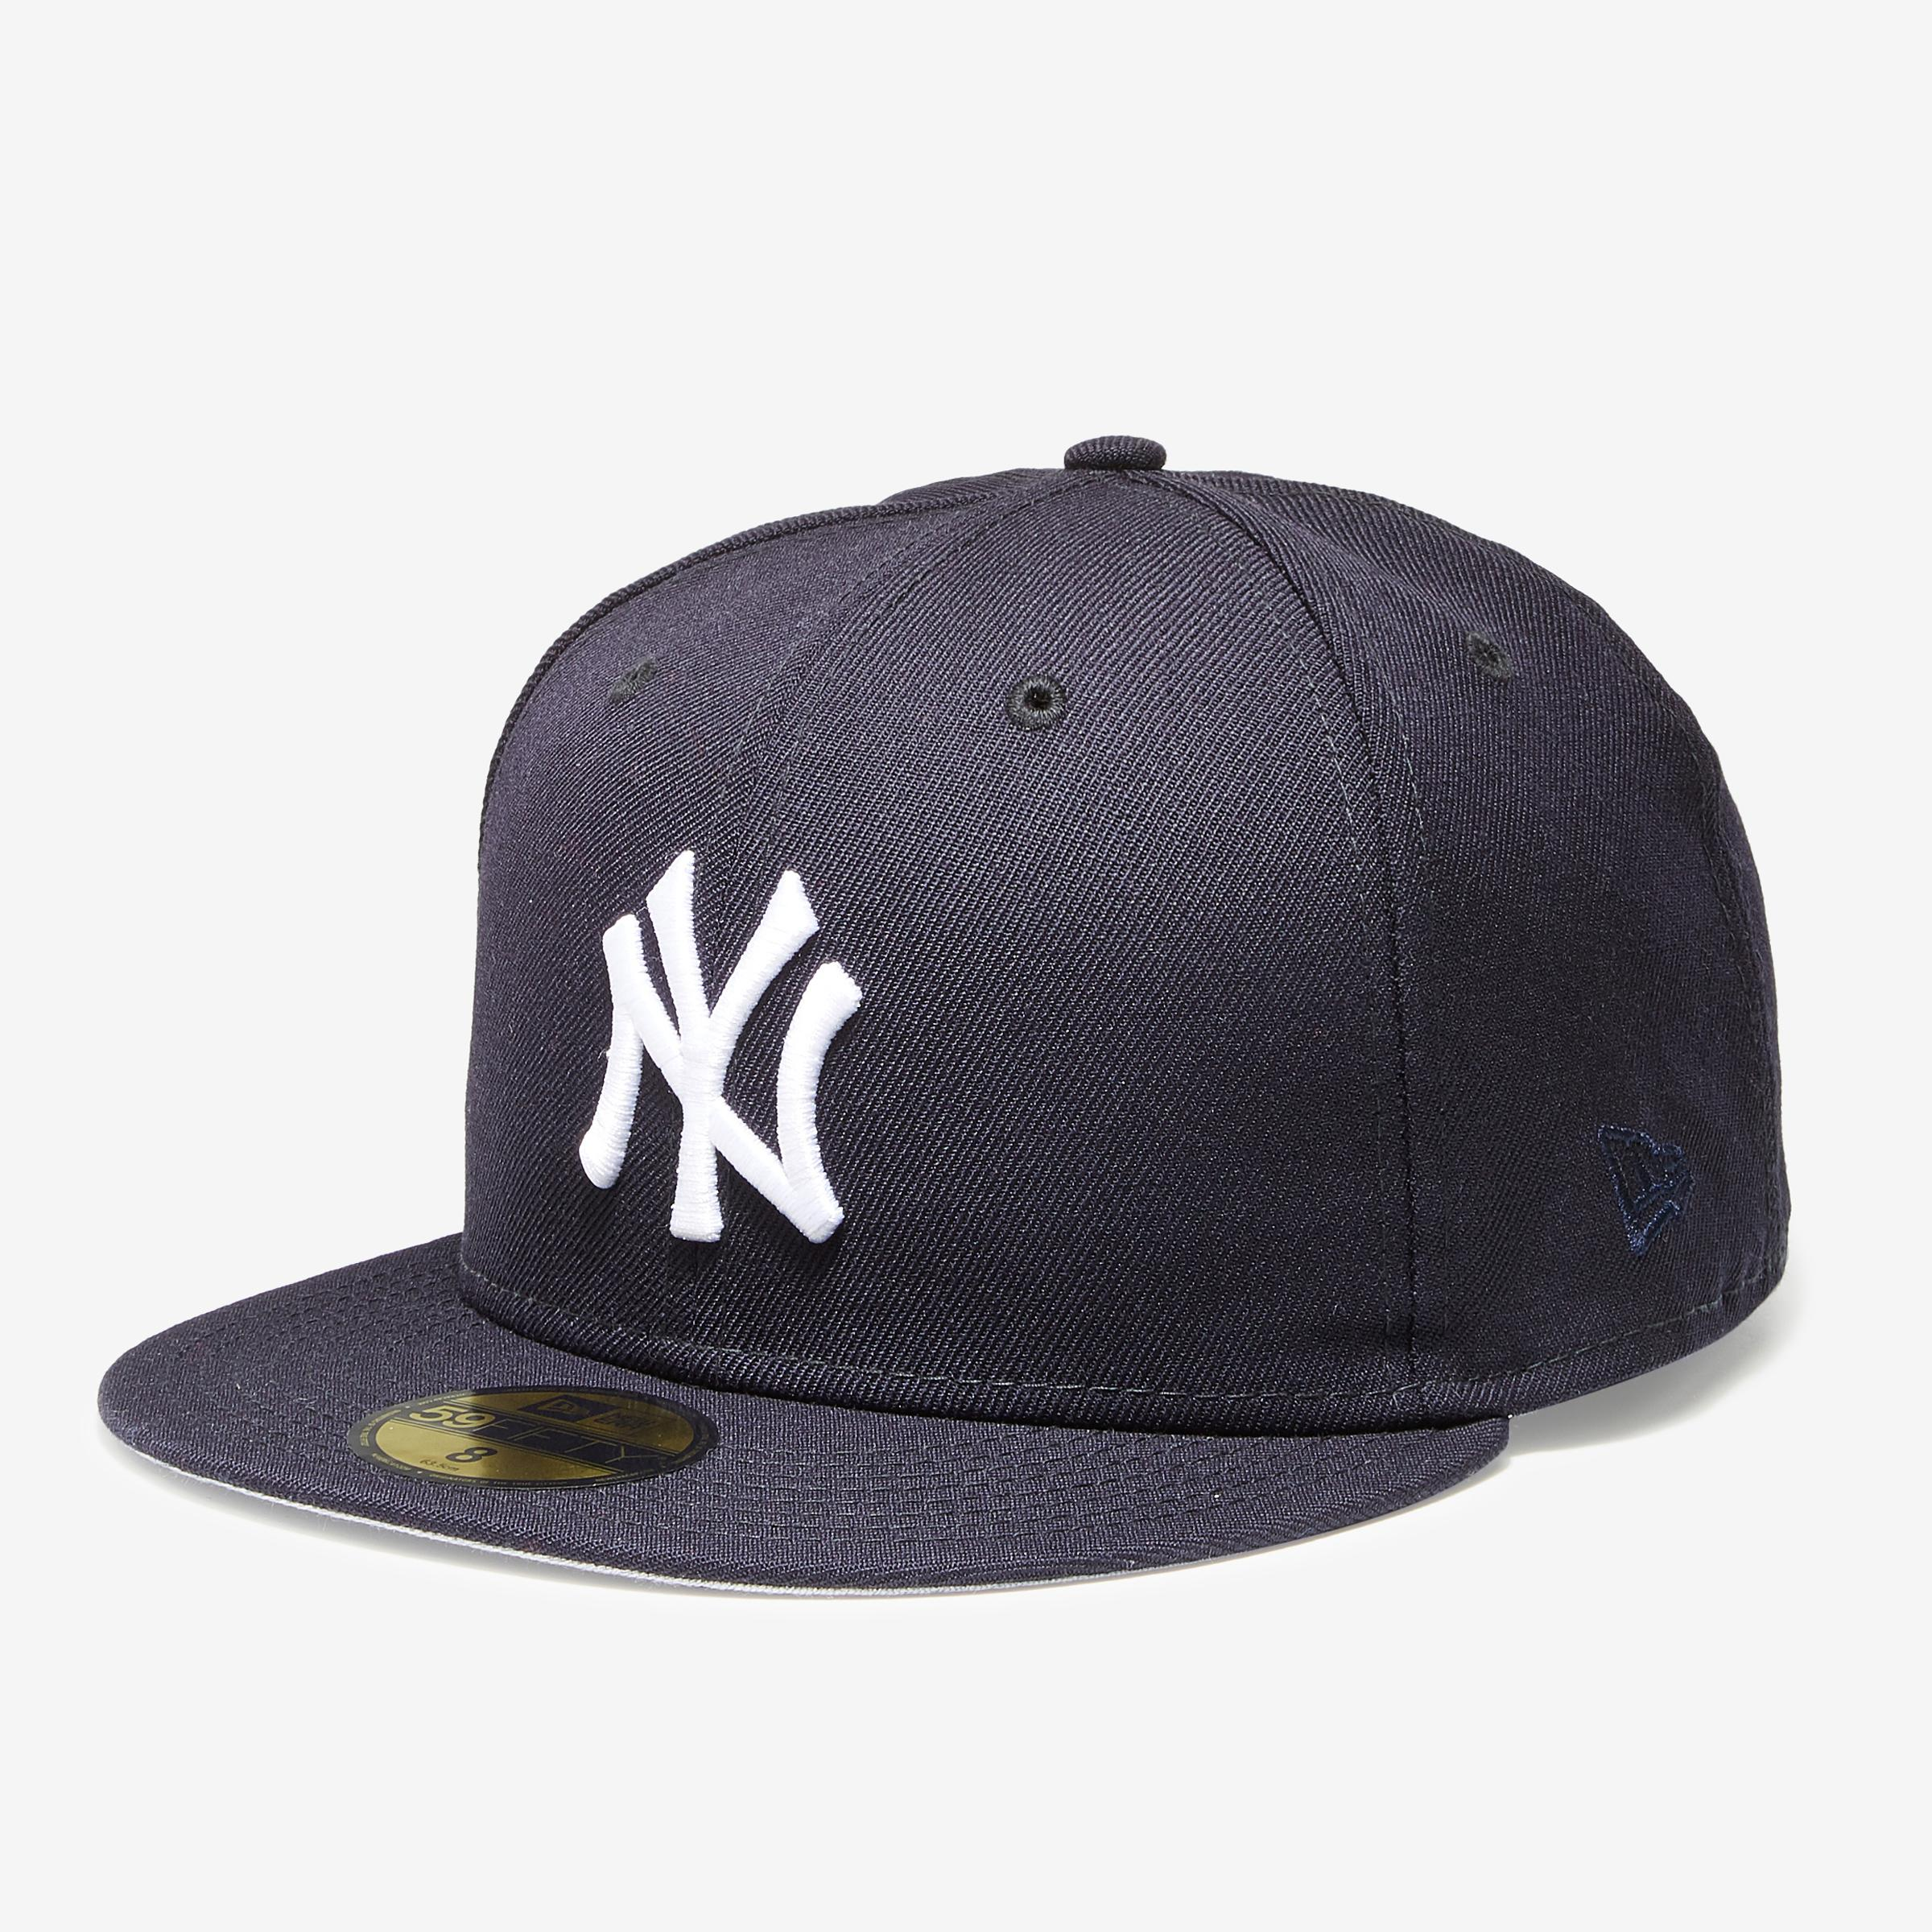 Yankees 59fifty Fitted